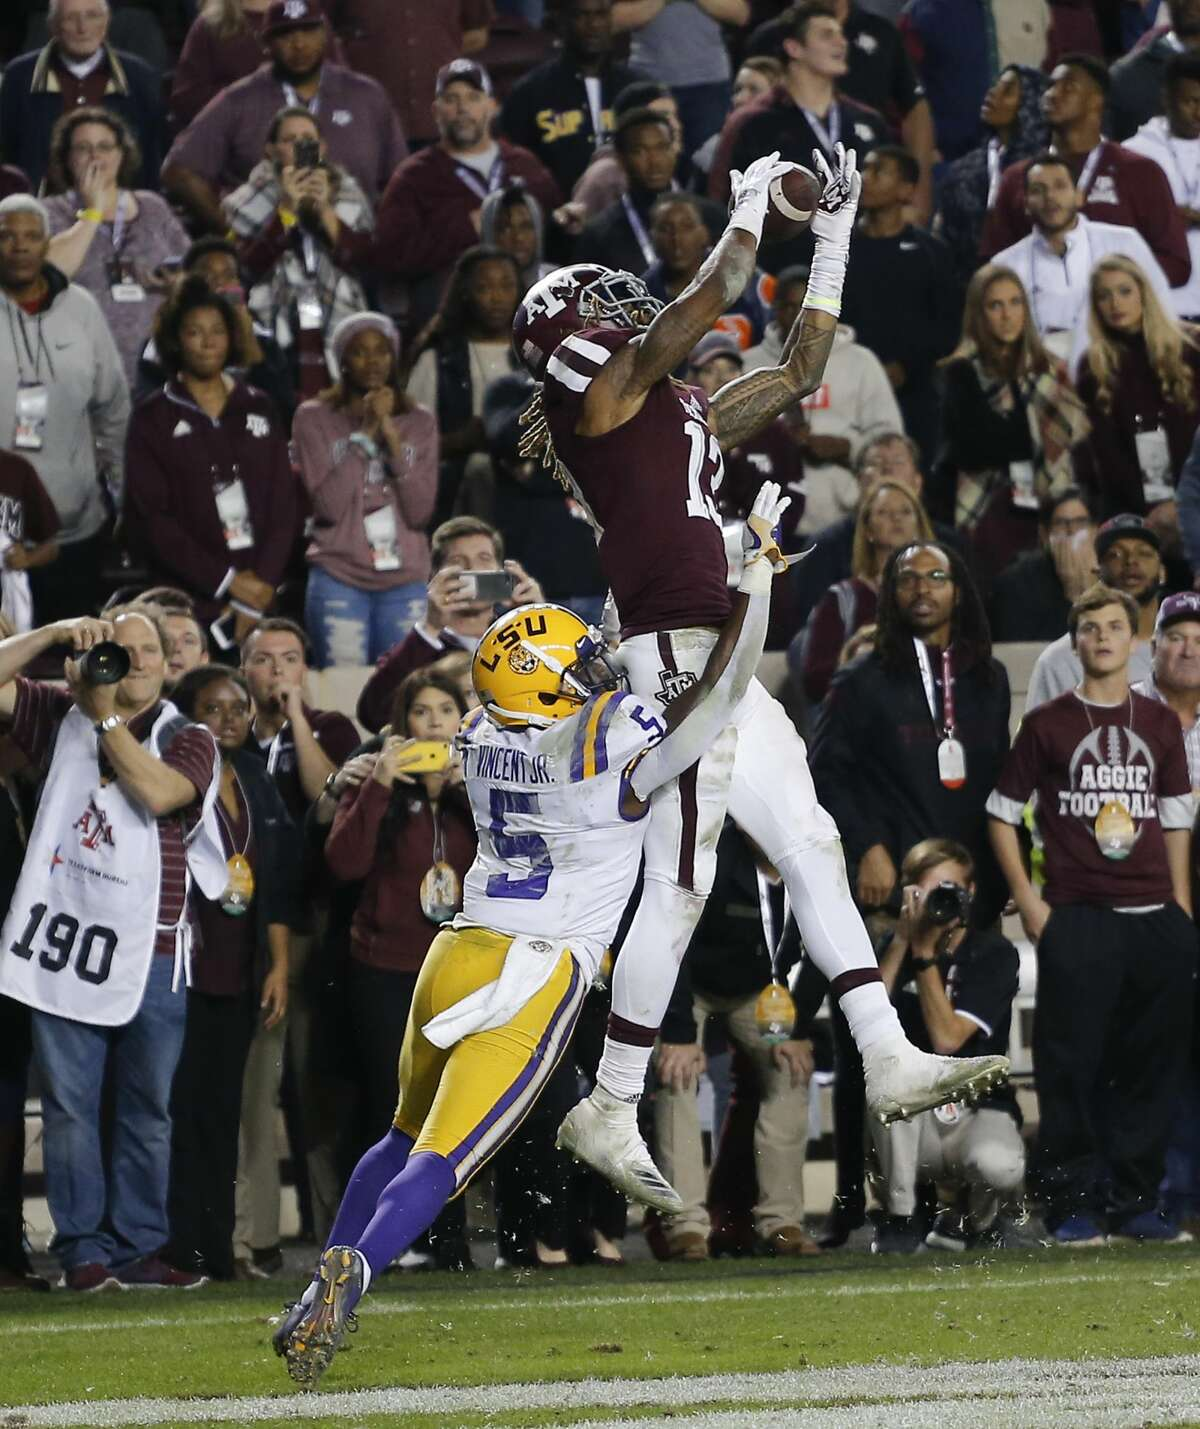 COLLEGE STATION, TEXAS - NOVEMBER 24: Kendrick Rogers #13 of the Texas A&M Aggies catches a pass for a touchdown in overtime as Kary Vincent Jr. #5 of the LSU Tigers defends as at Kyle Field on November 24, 2018 in College Station, Texas. (Photo by Bob Levey/Getty Images)